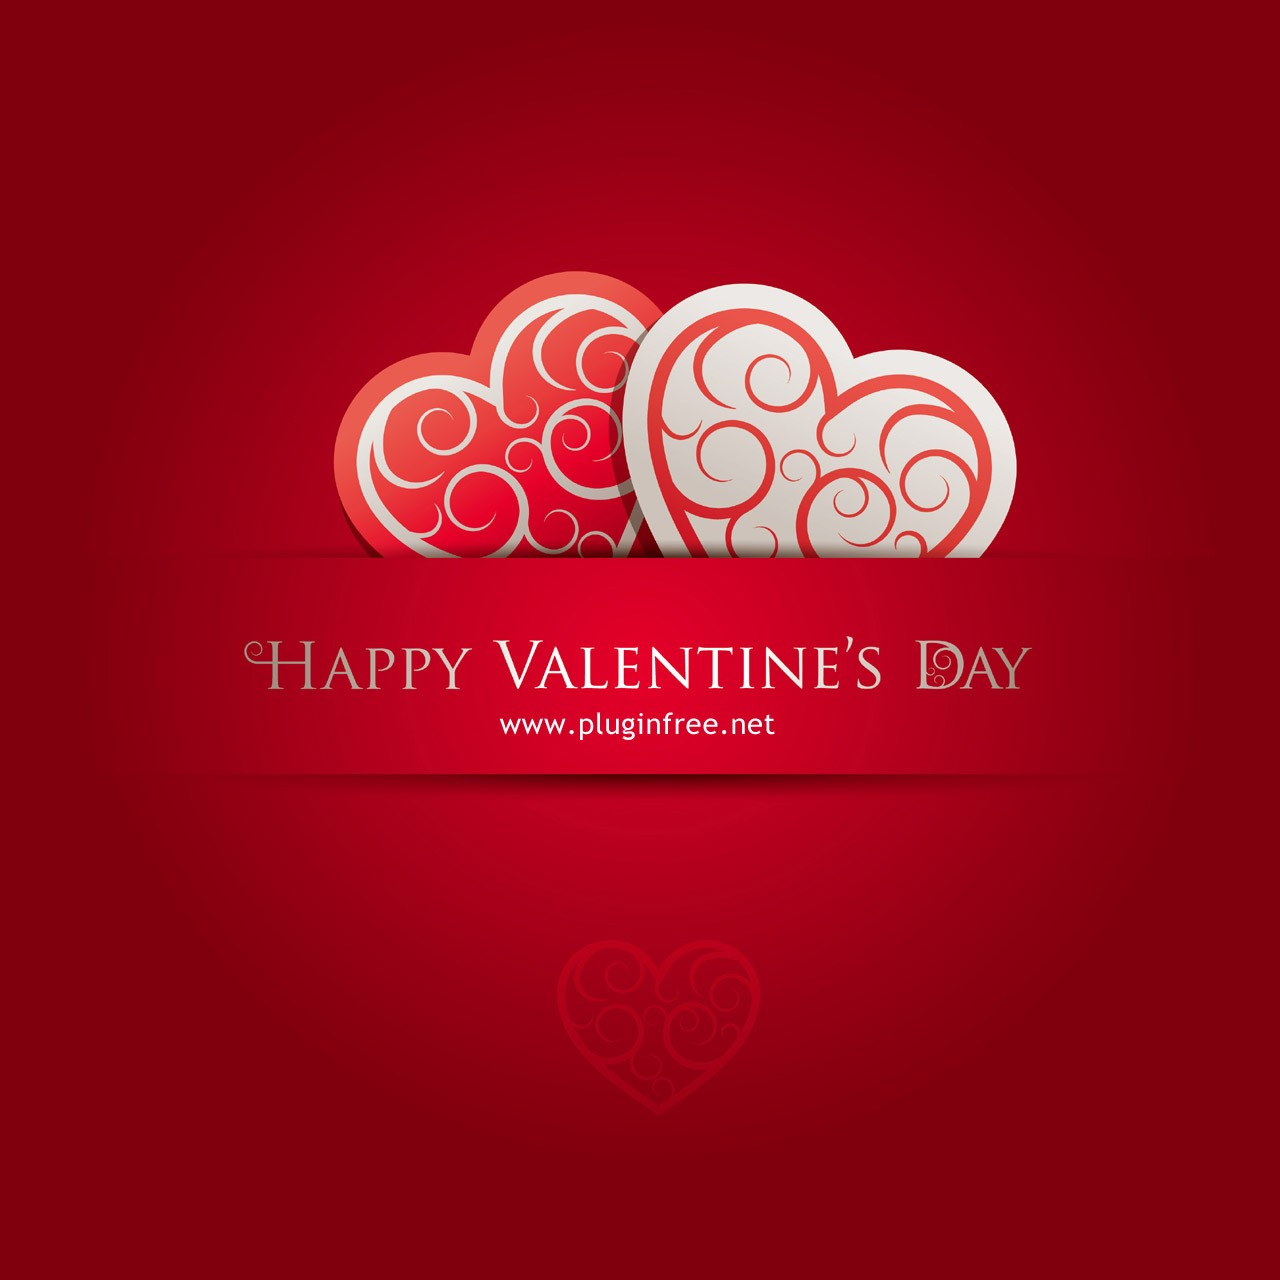 Happy Valentines Day Greeting Card Picture